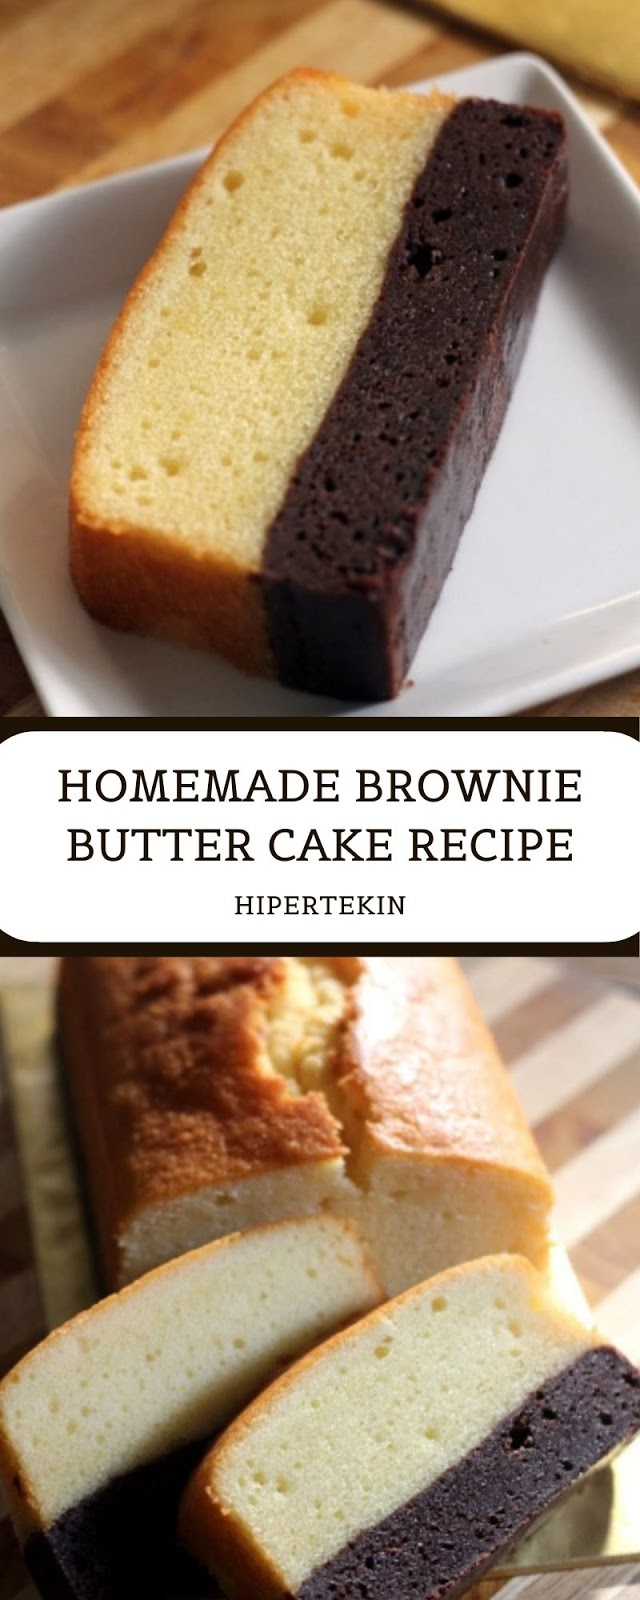 HOMEMADE BROWNIE BUTTER CAKE RECIPE